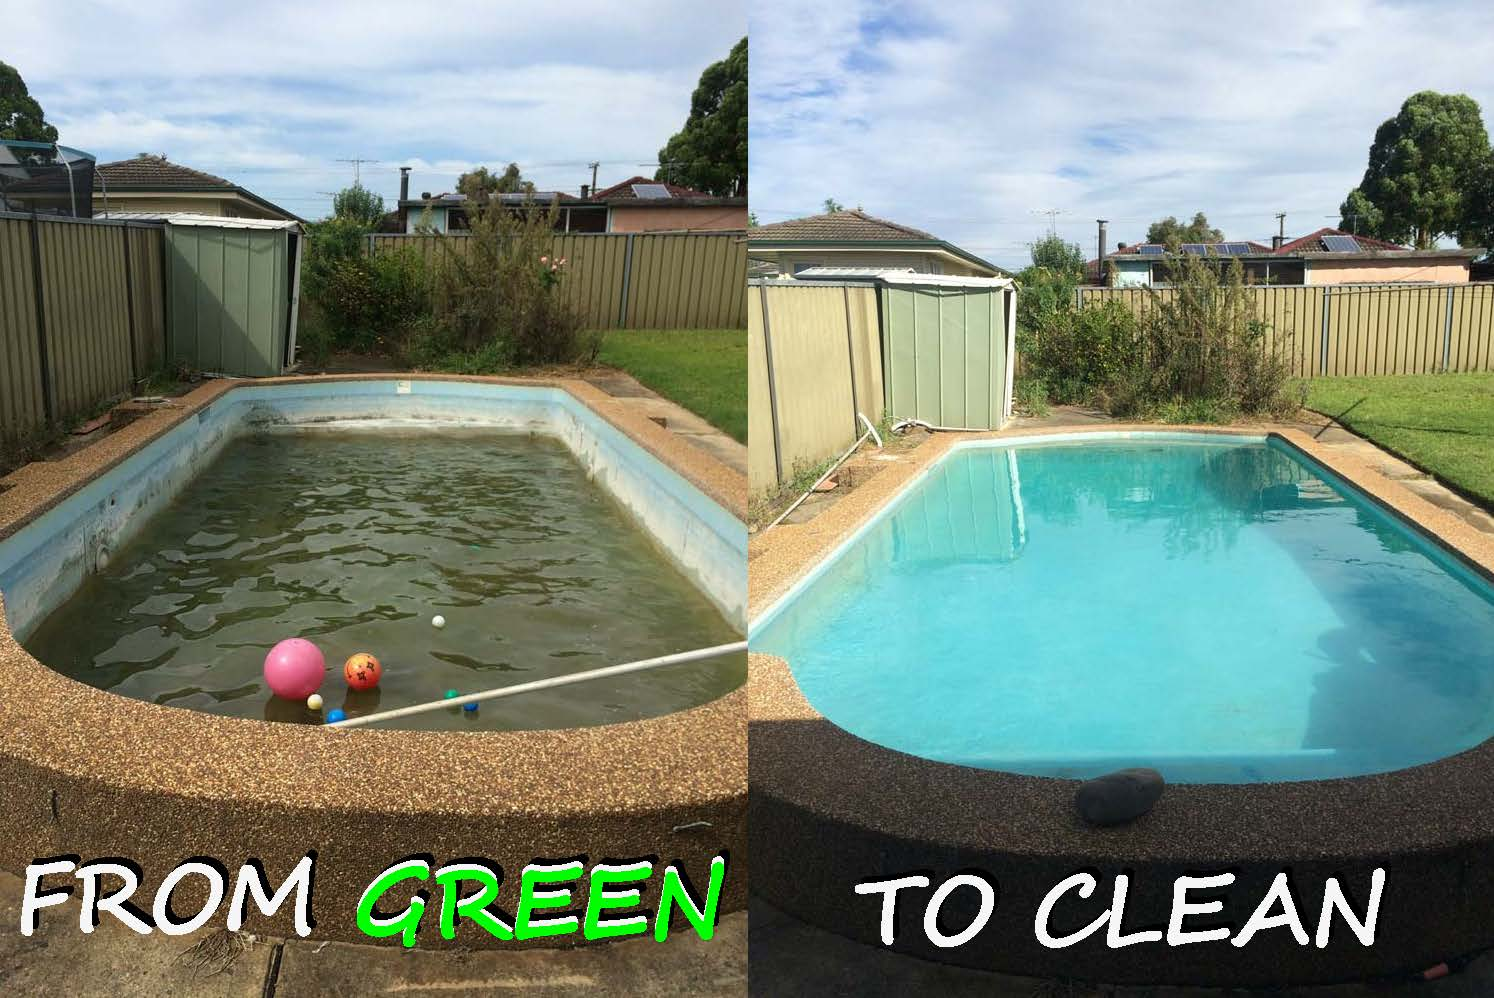 How to clean a neglected green swimming pool clean pools - How long after you shock a pool can you swim ...